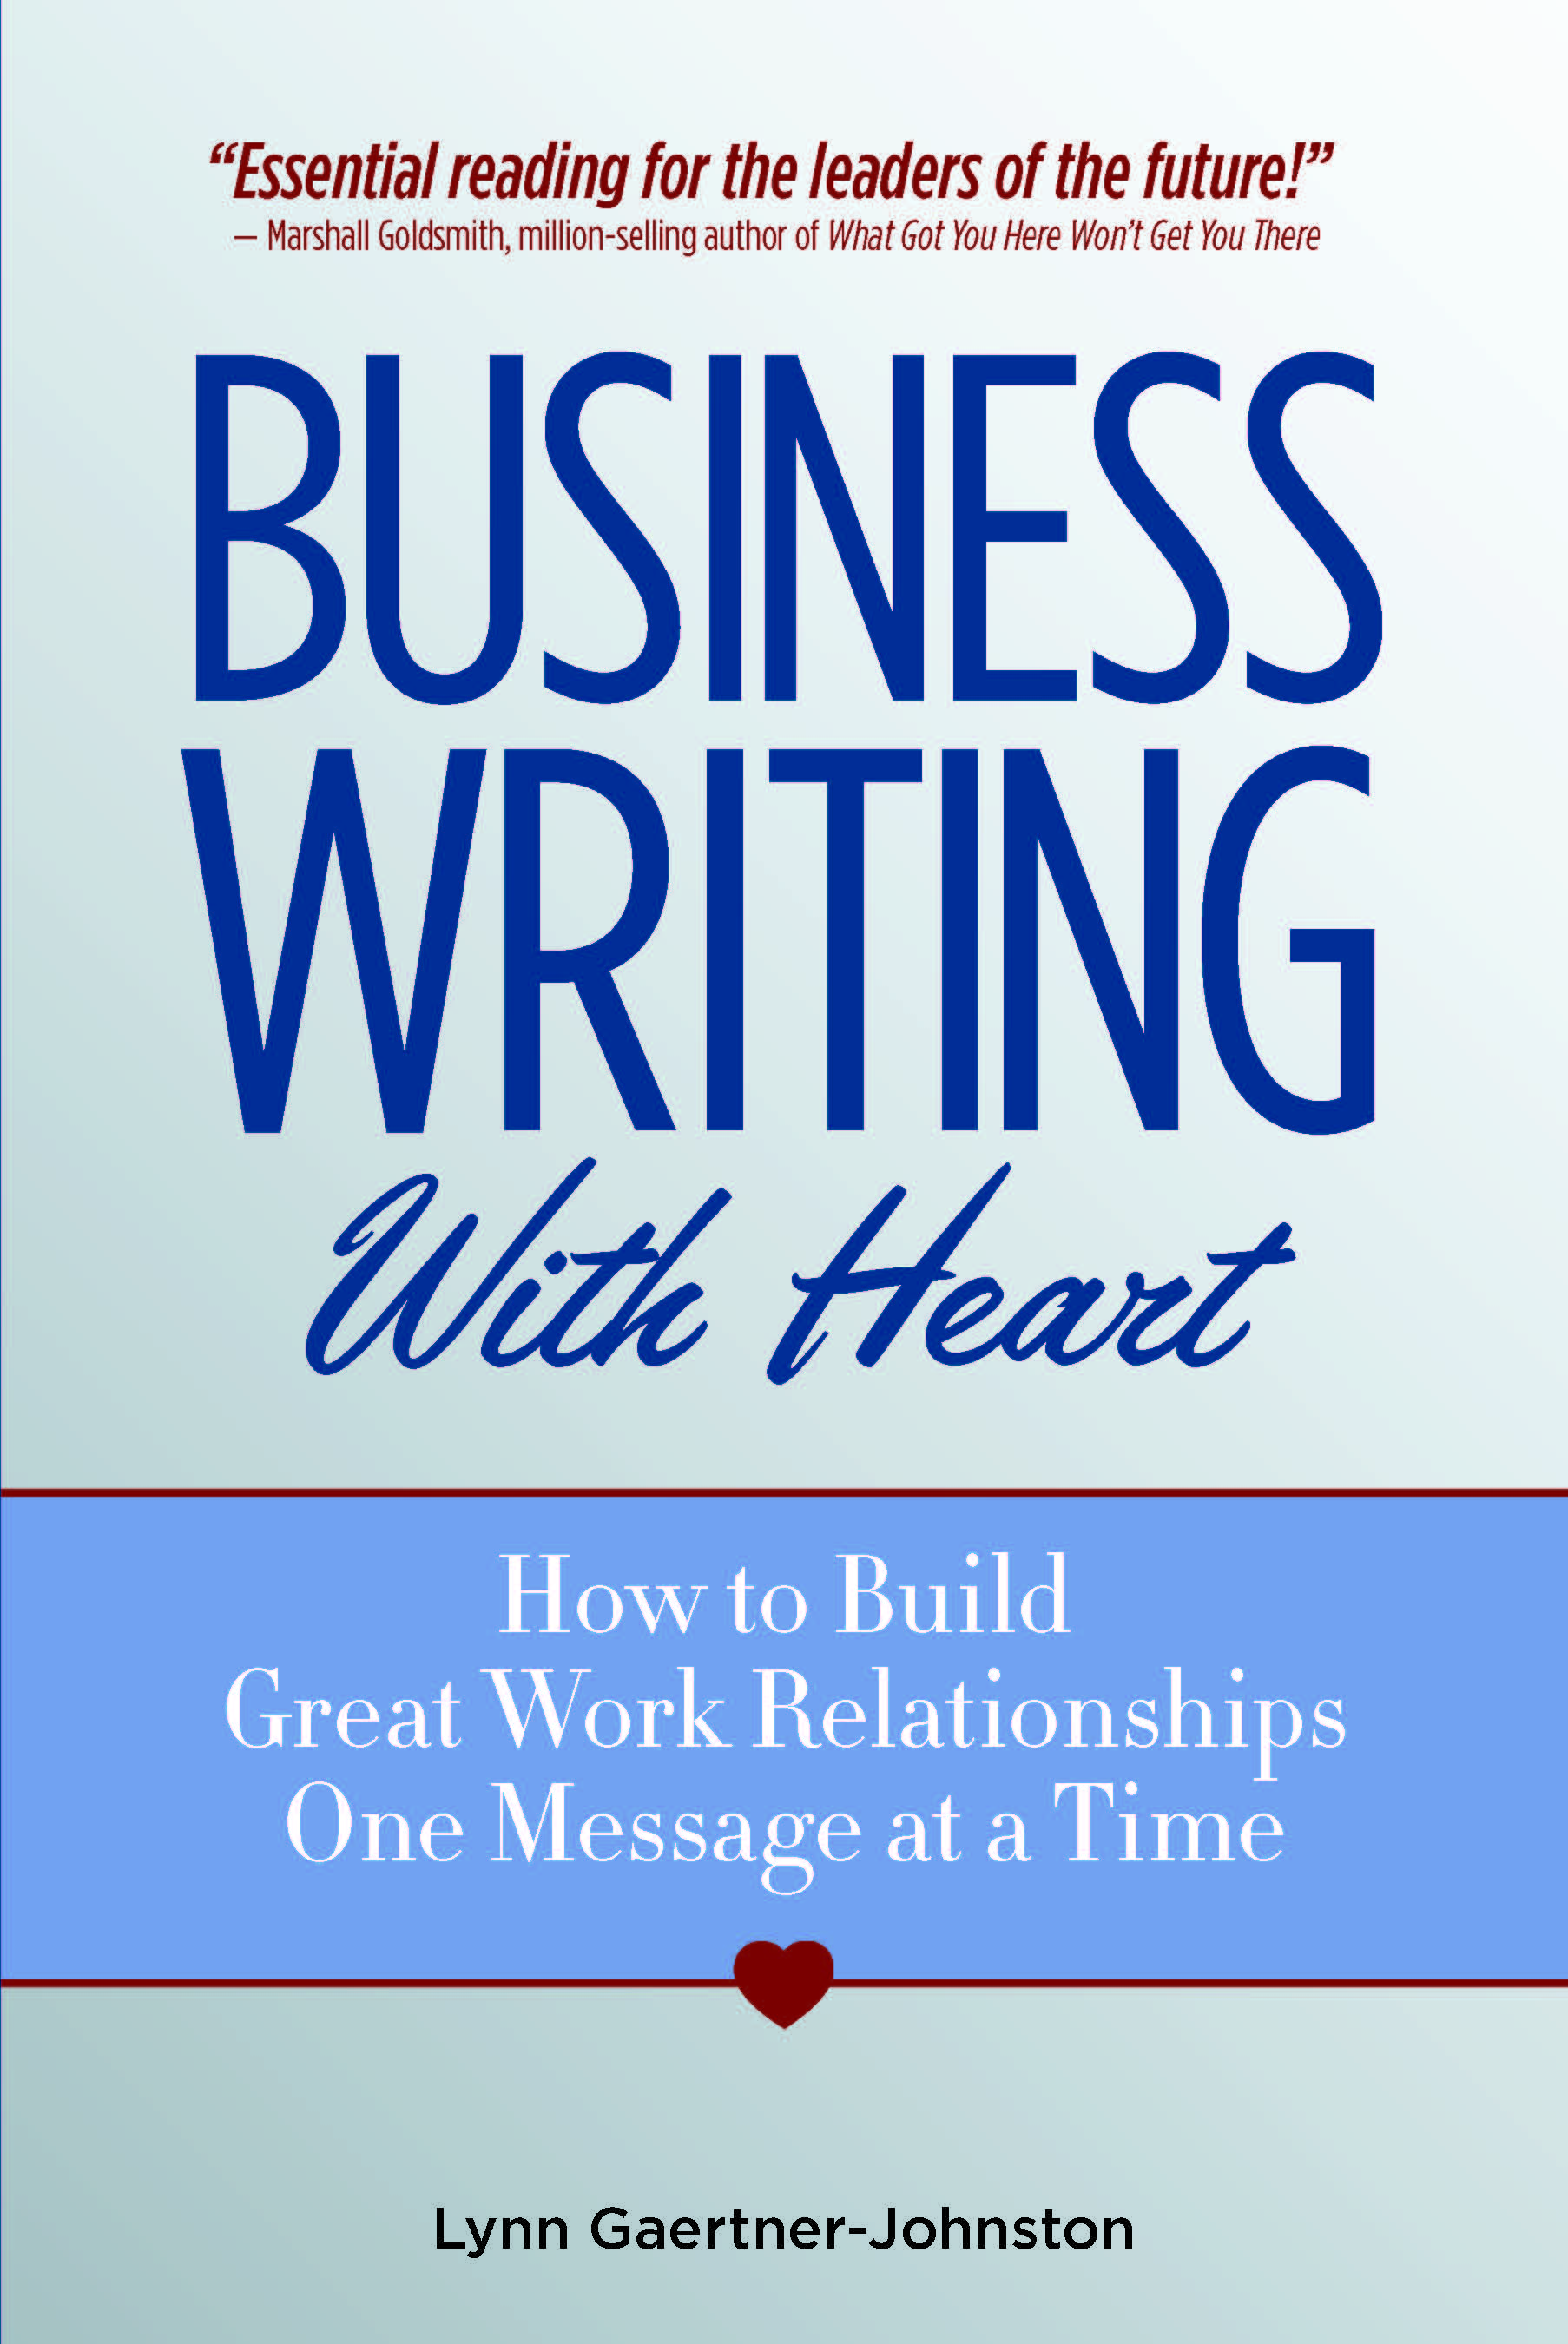 Beware The Power Of Email To Destroy Work Relationships Warns BusinessWritingWithHeart FrontCover Prwebhtm